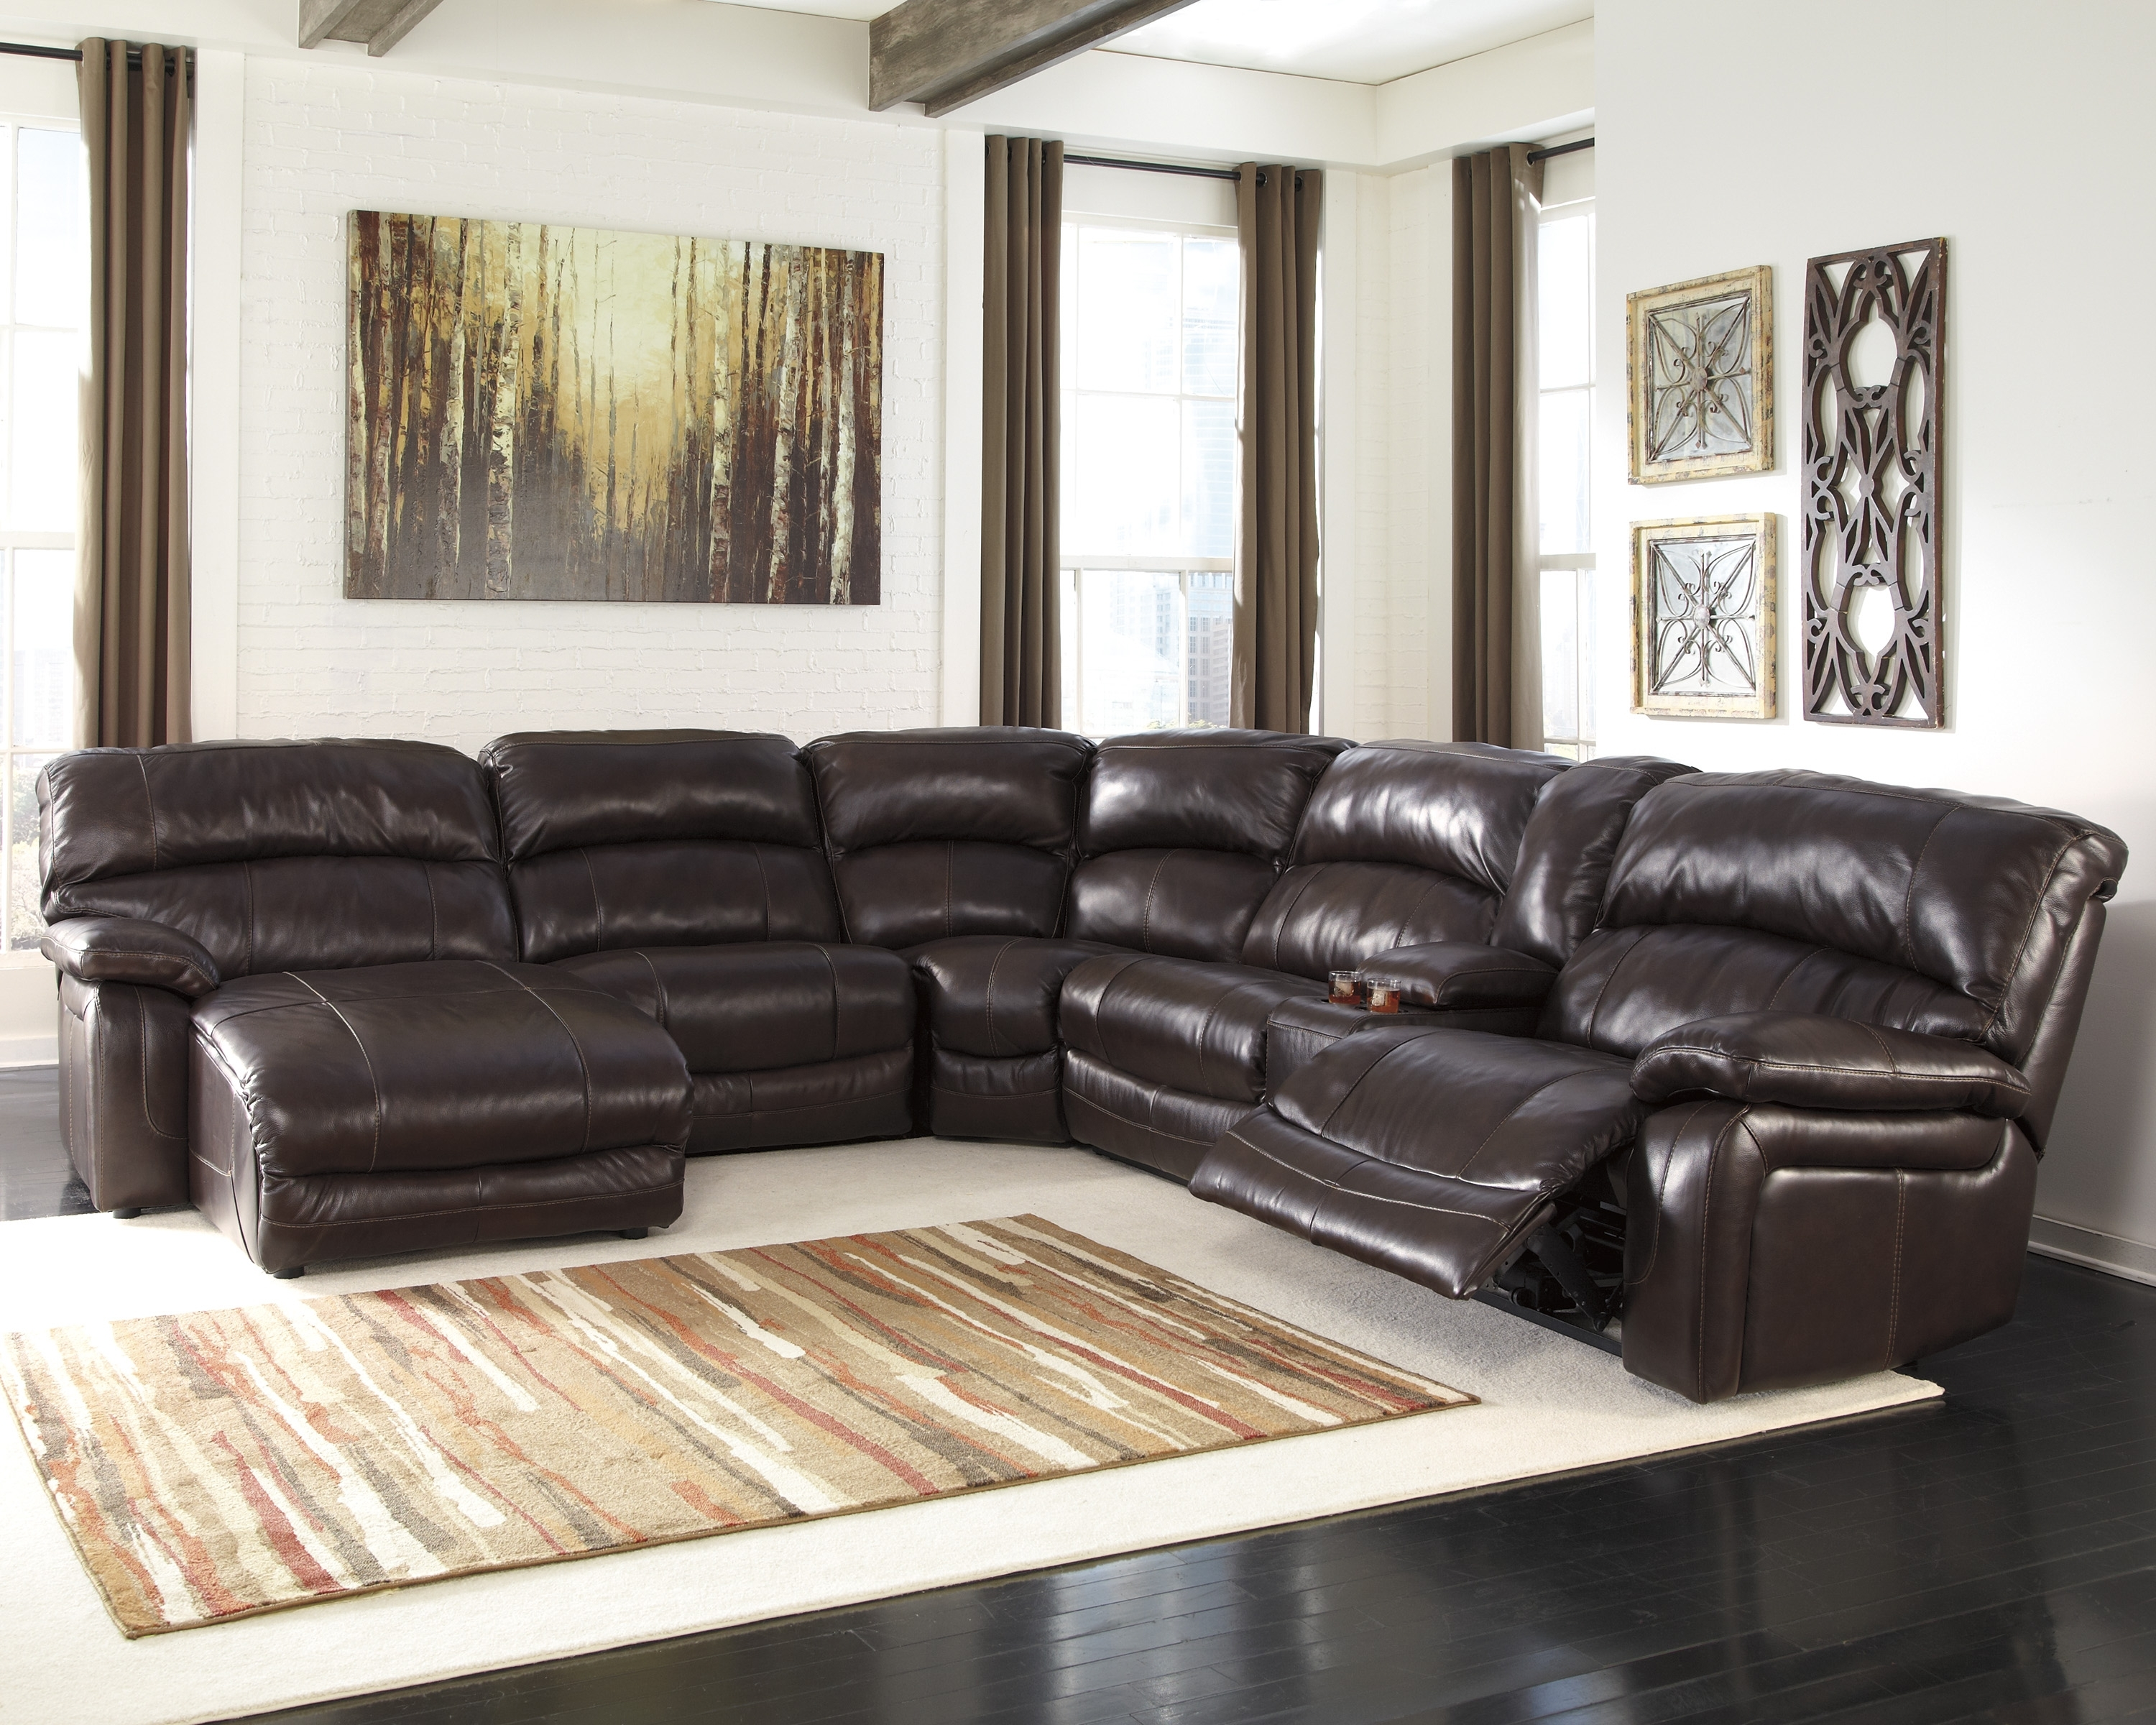 Leather Sectionals With Chaise And Recliner Throughout Newest Leather Sectional Sofas With Recliners And Cup Holders Sectional (View 8 of 15)